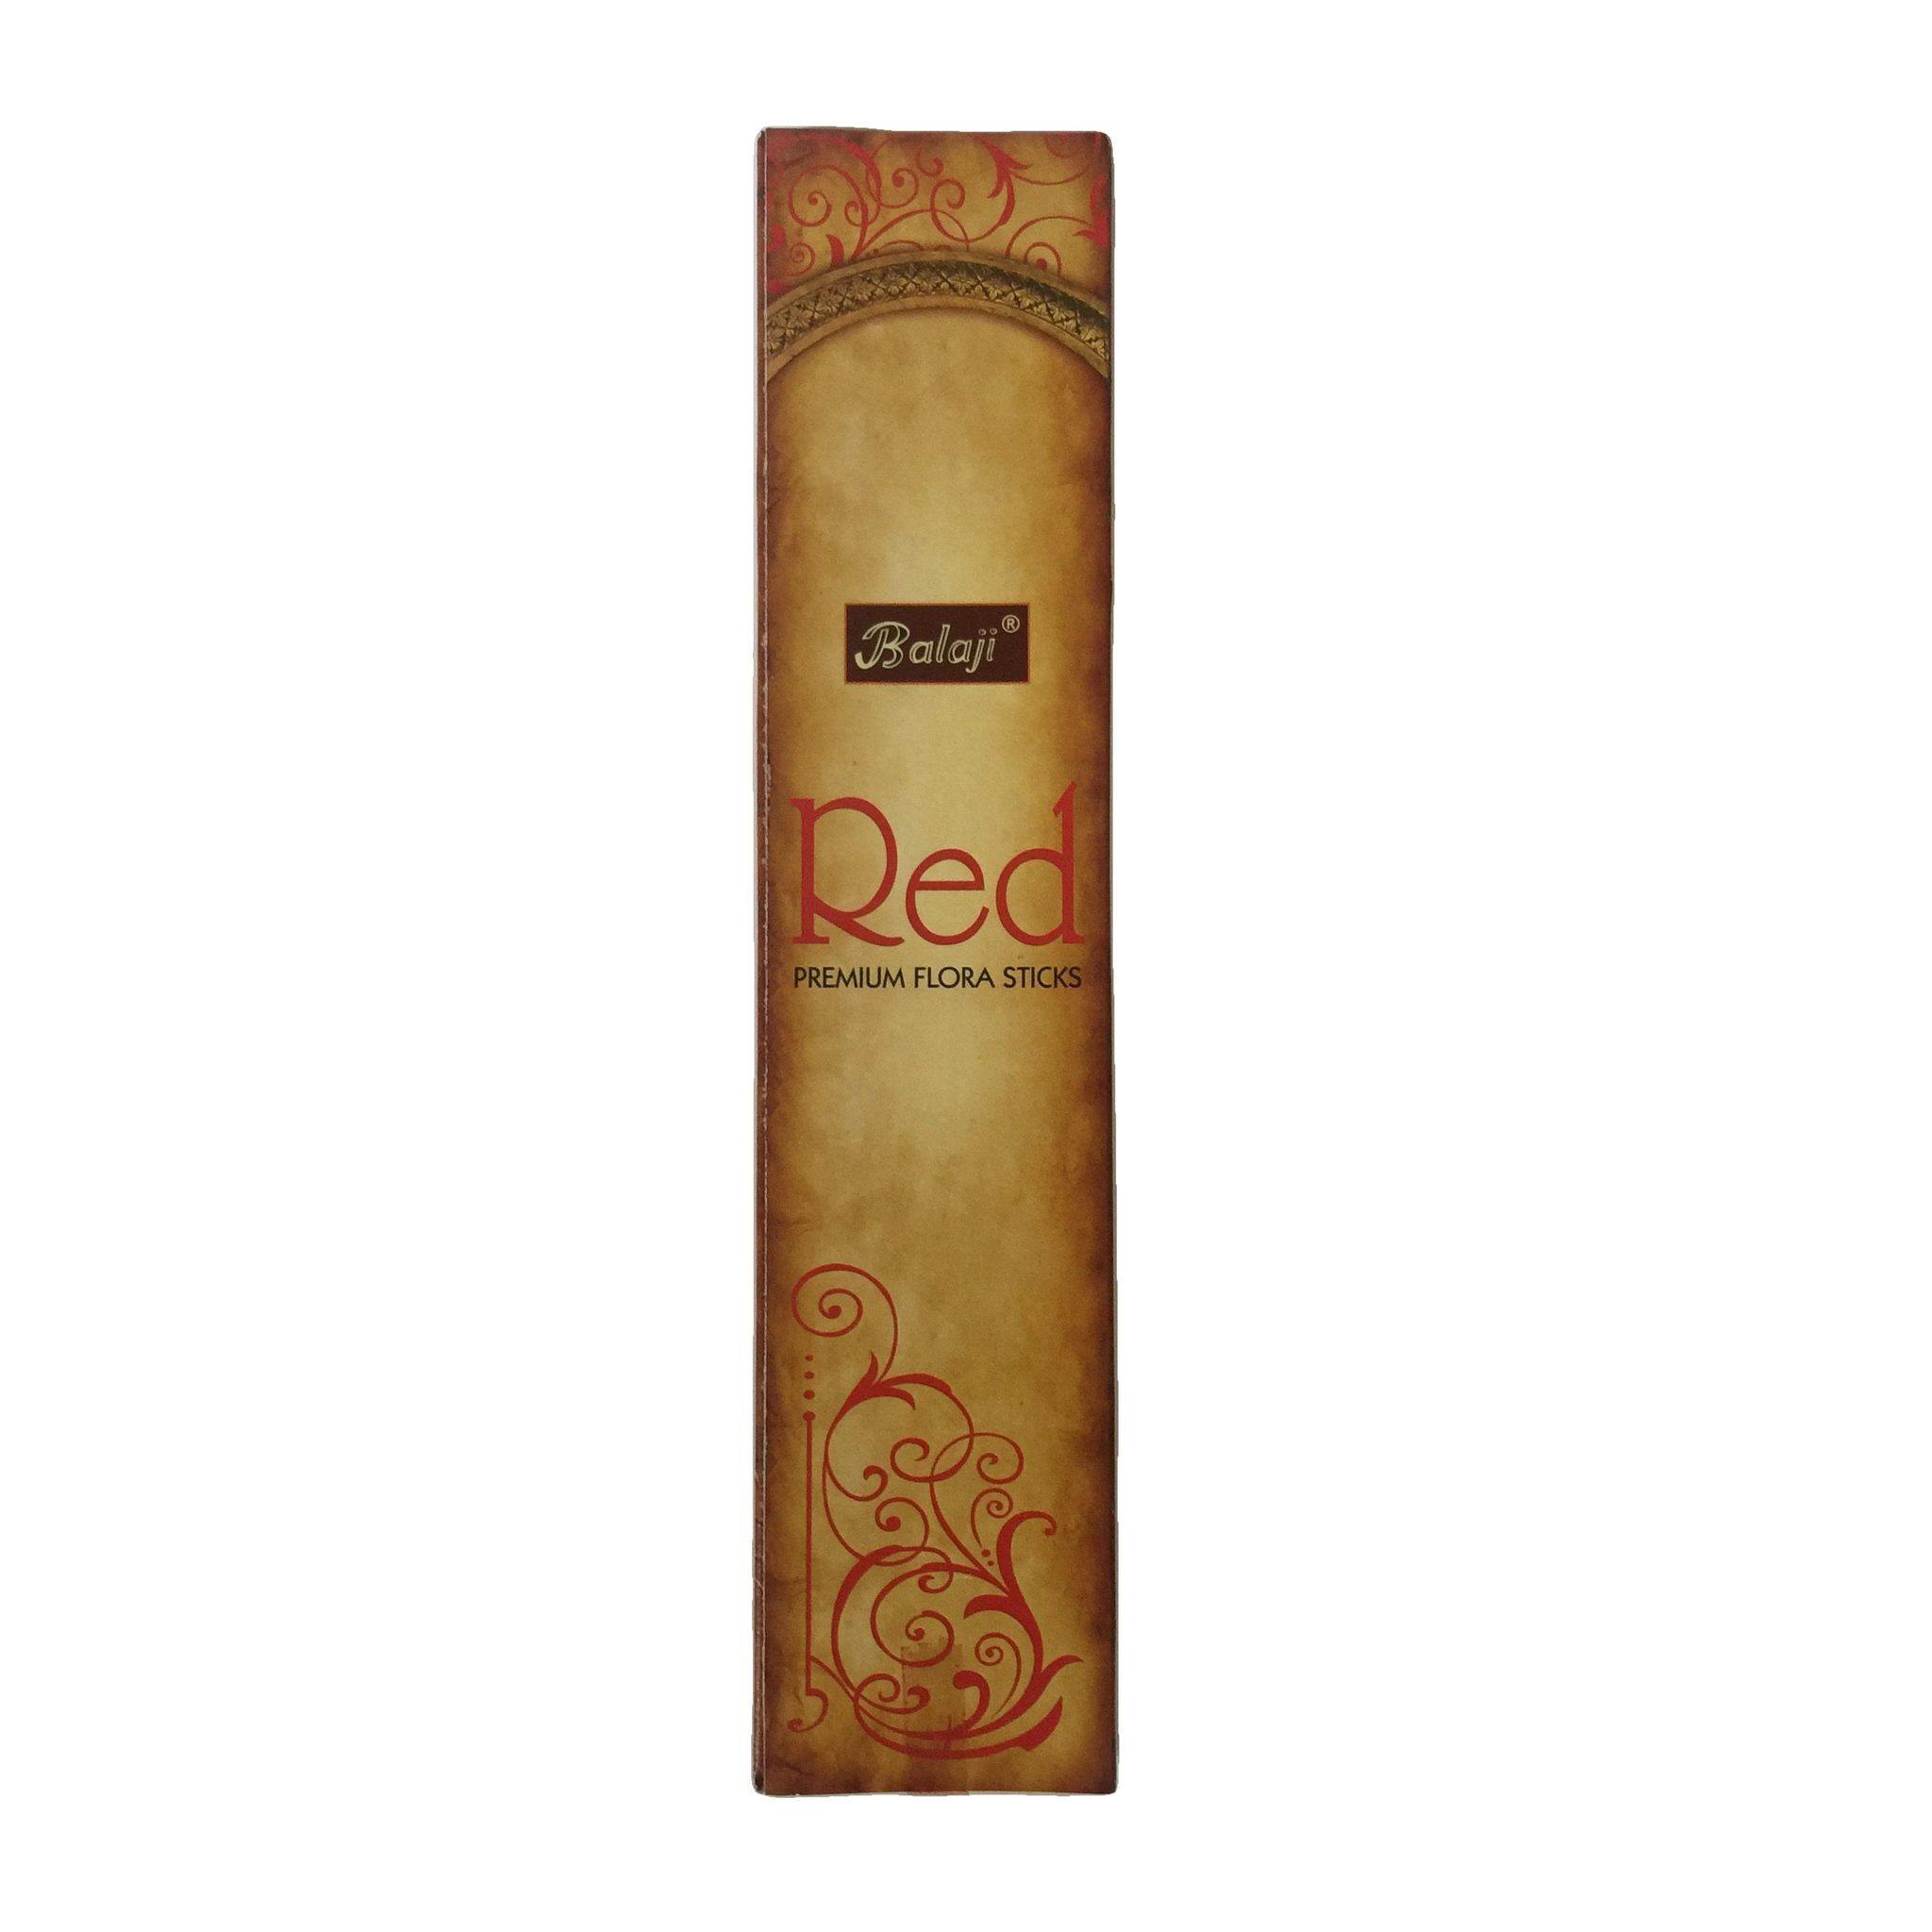 Red Premium Flora Sticks